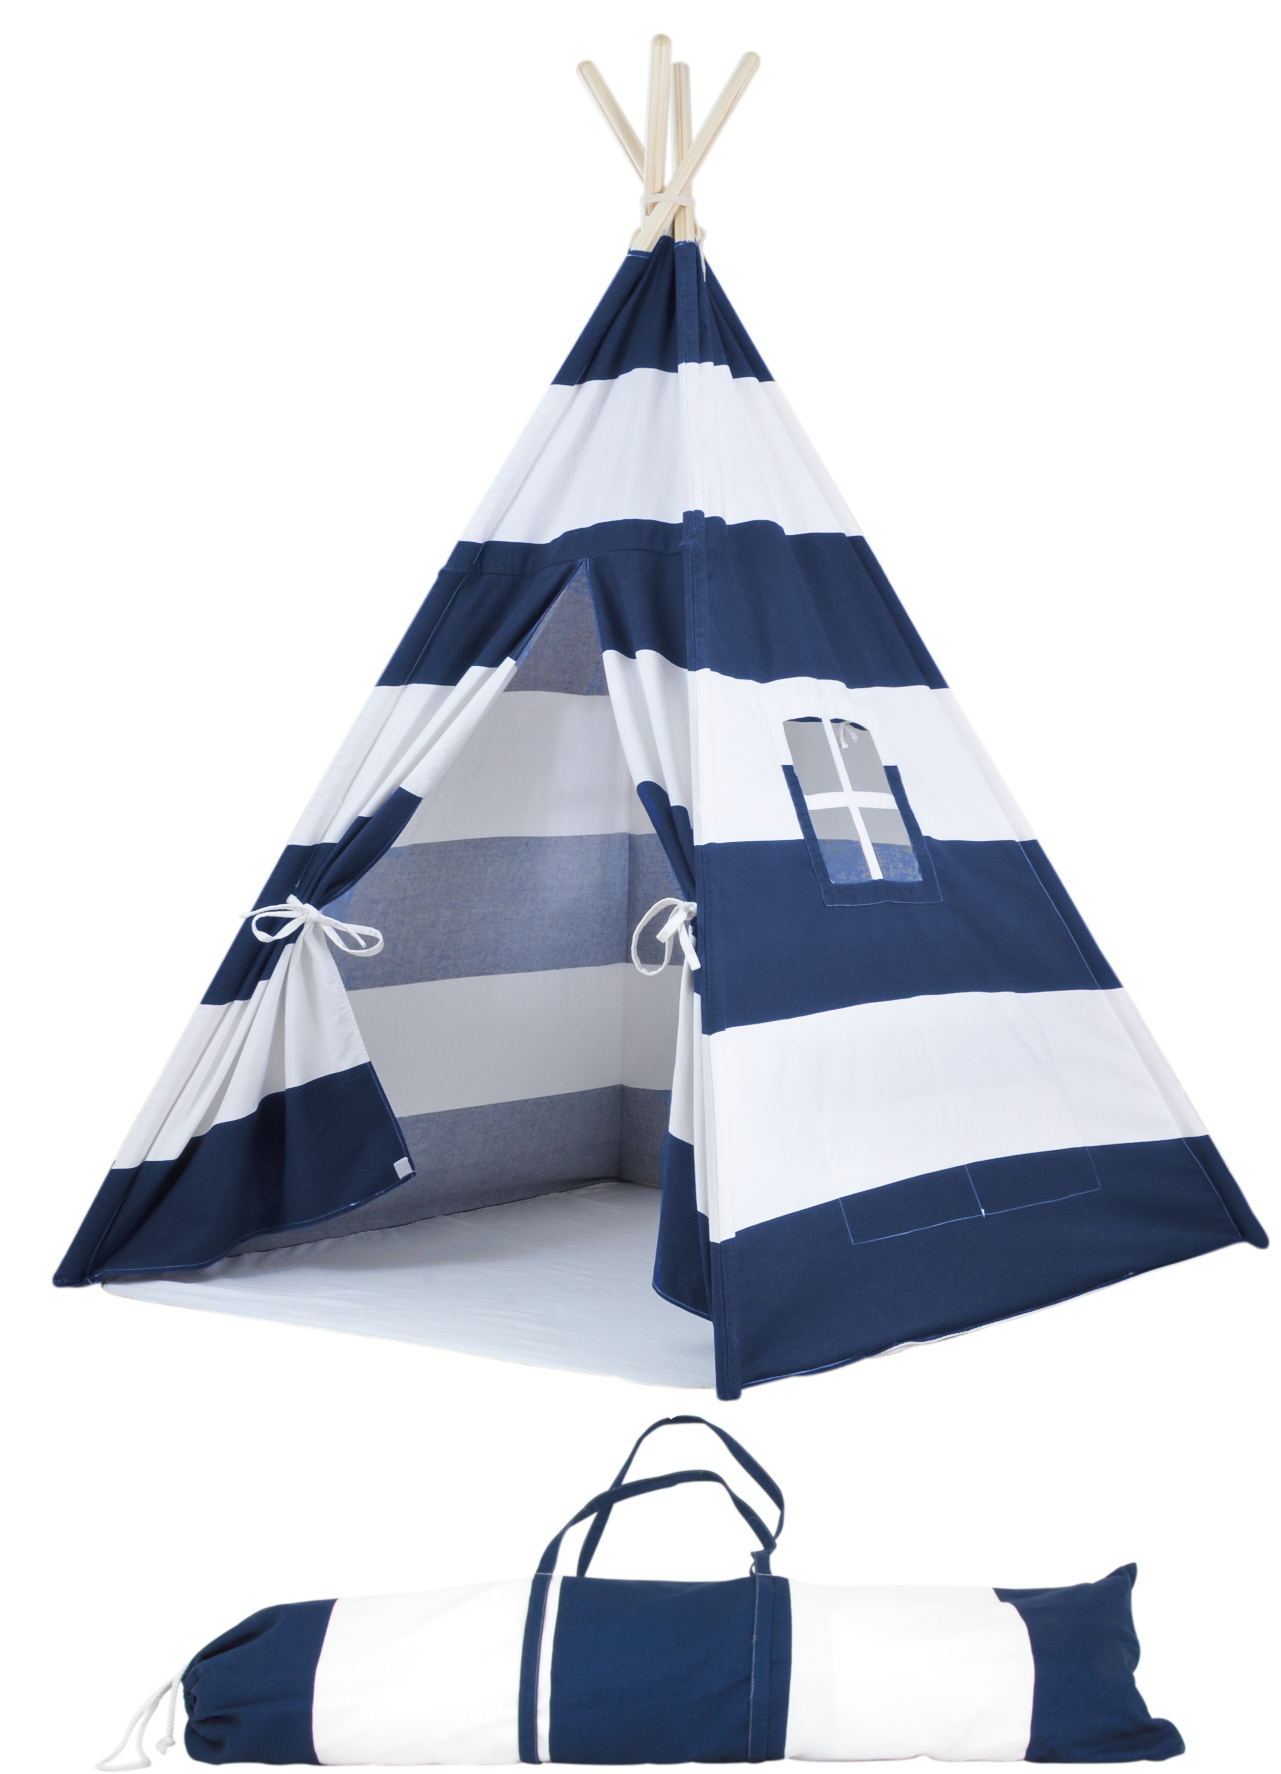 Portable Kids Canvas Teepee Tent with Carrying Case Large Navy Stripes - A Mustard Seed Toys  sc 1 st  A Mustard Seed Toys & Portable Kids Canvas Teepee Tent with Carrying Case Large Navy ...